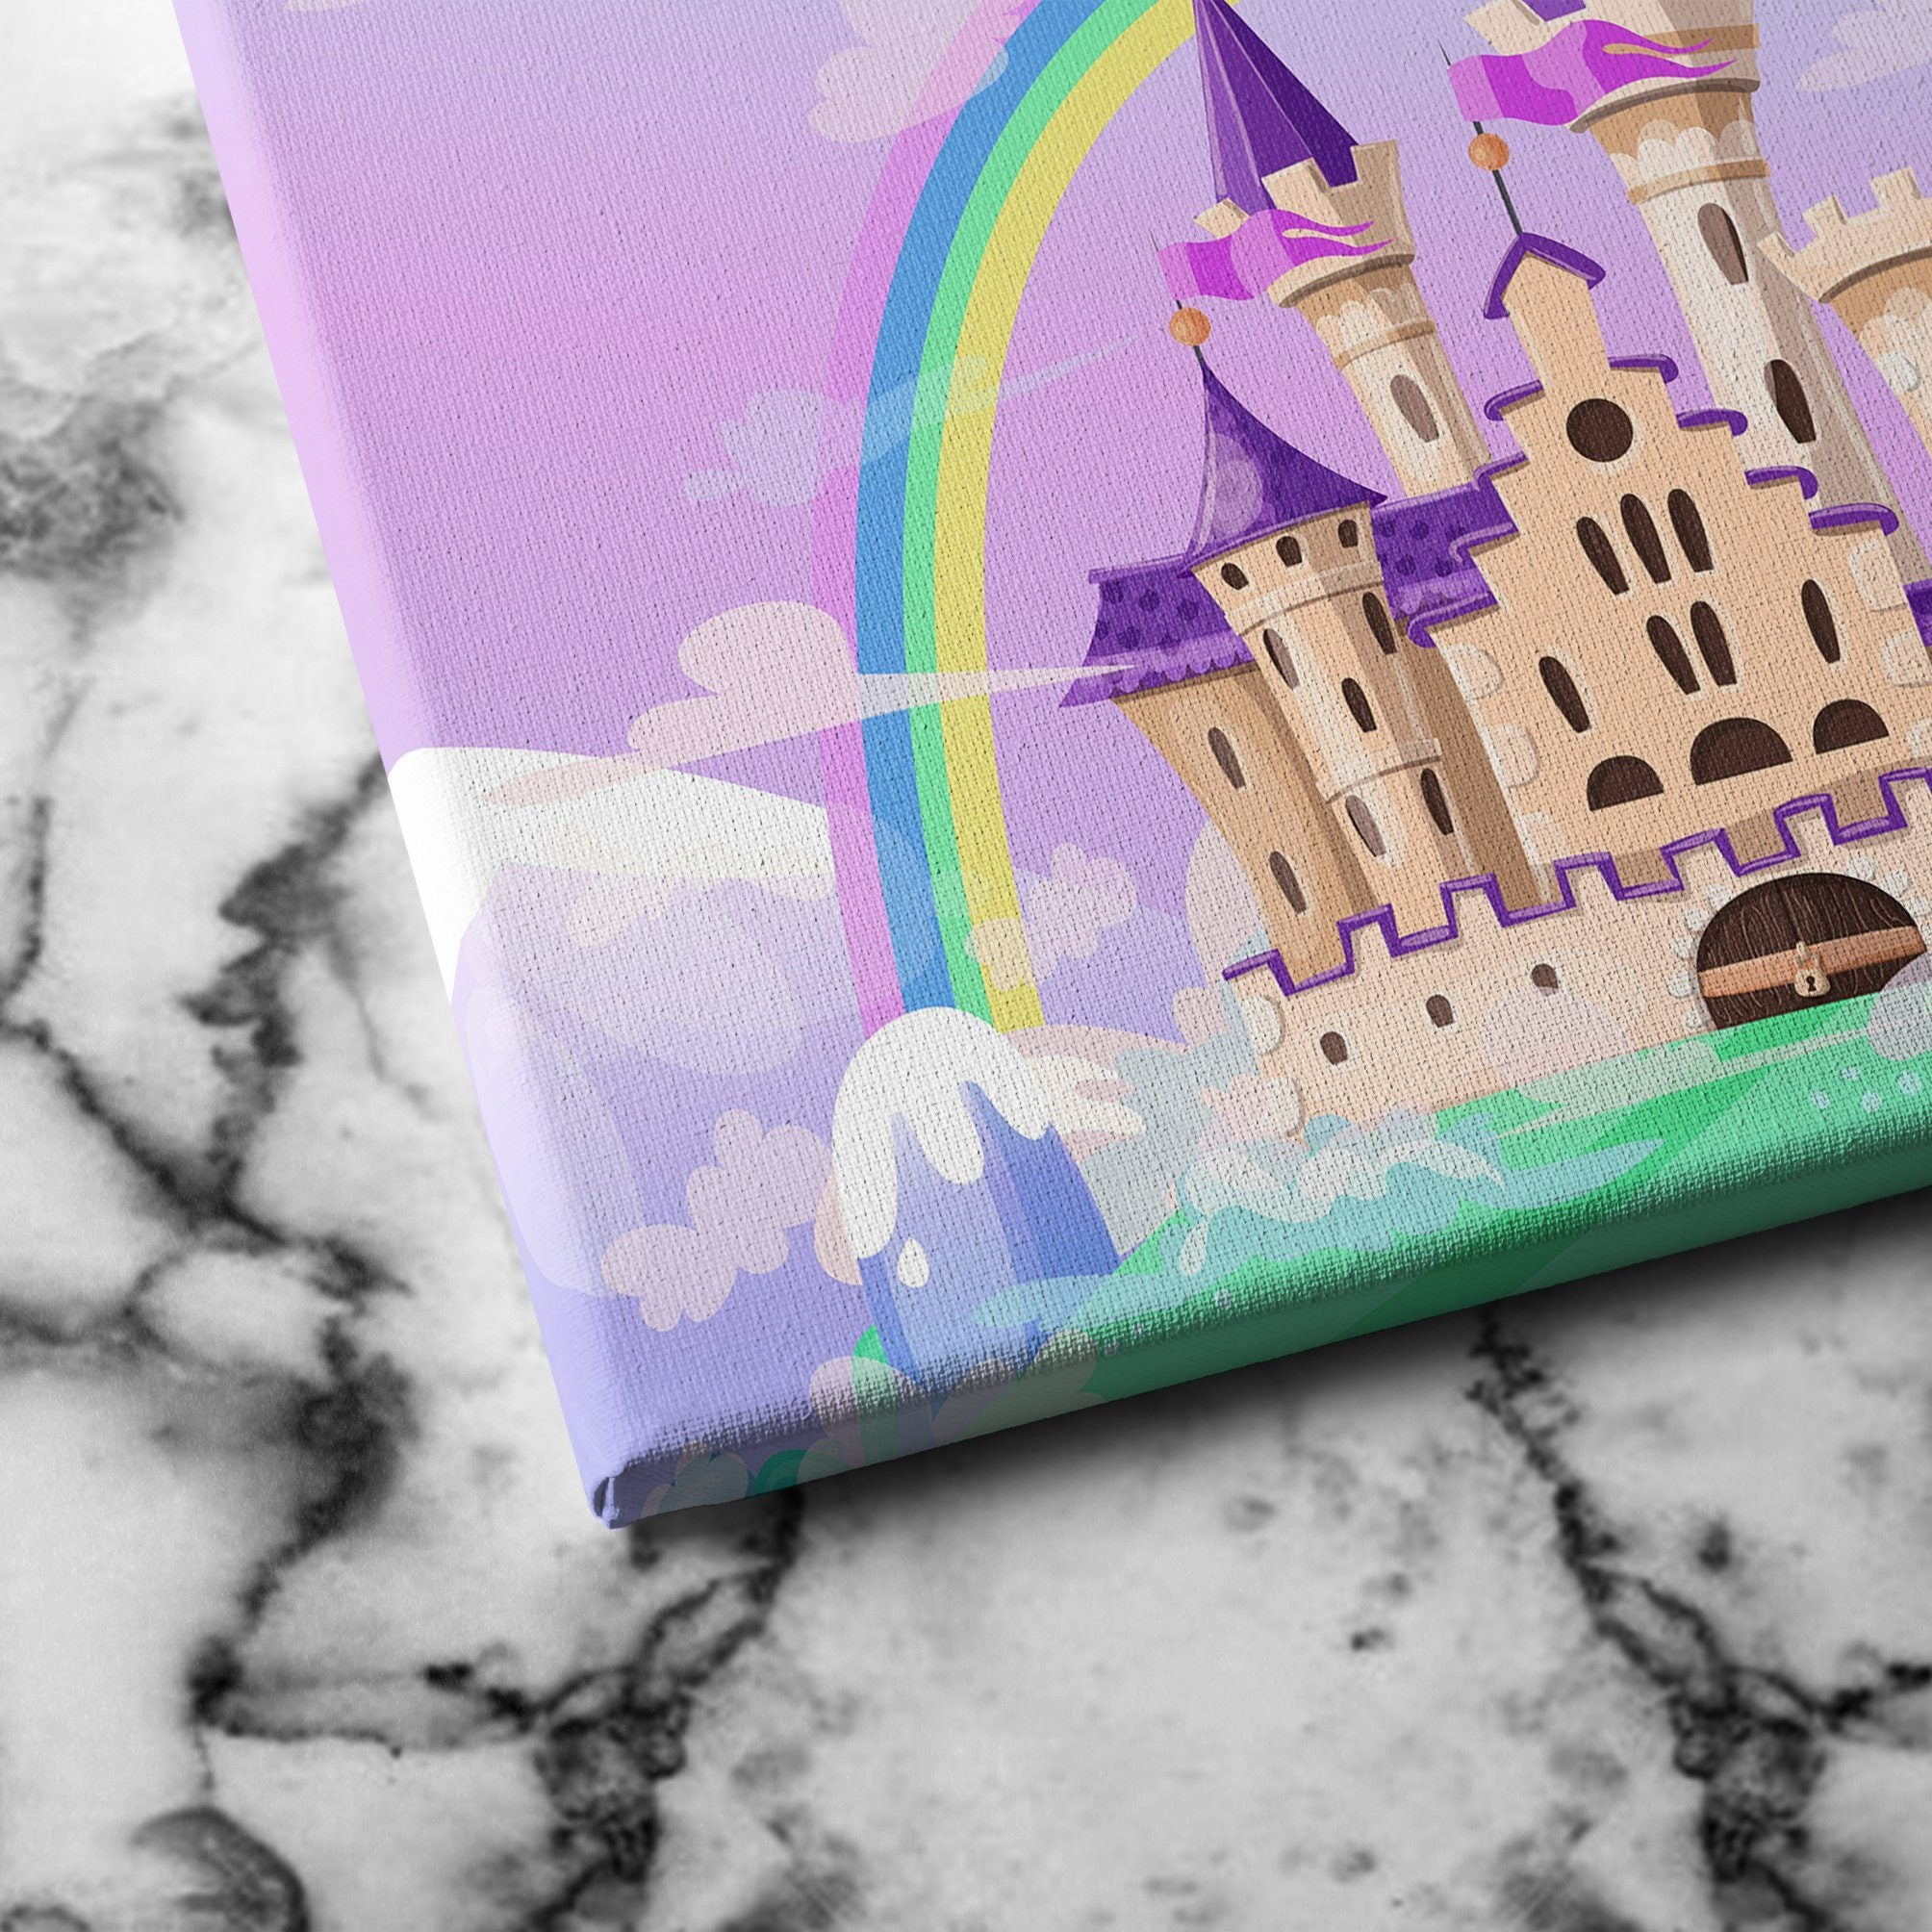 FairyTale Palace canvas art